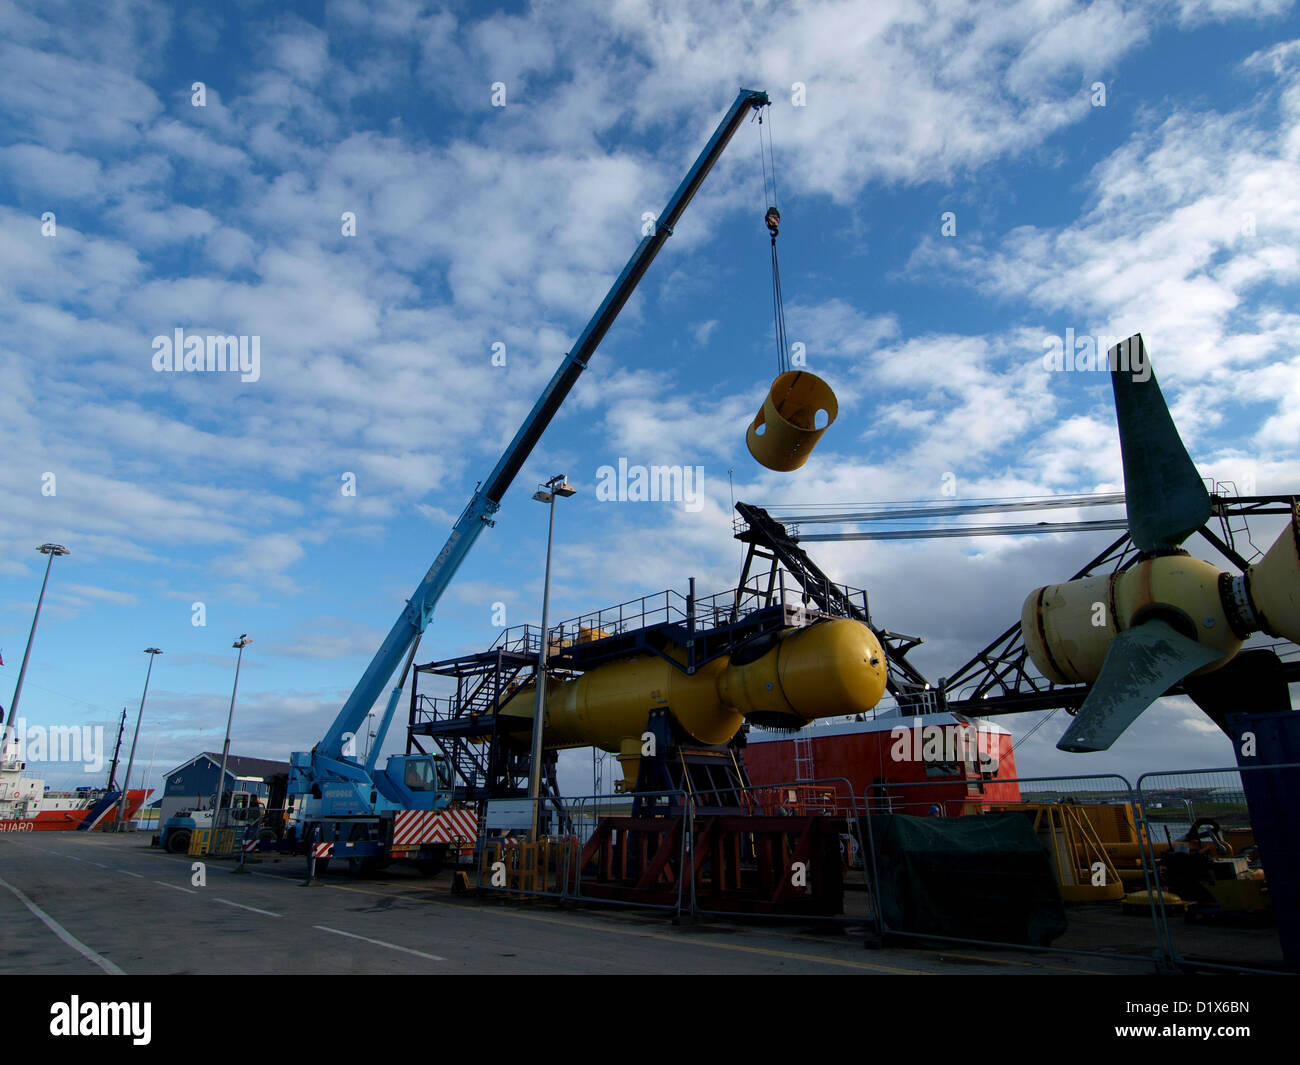 Two experimental tidal energy devices being assembled for testing at EMEC in Orkney, on the quayside in Kirkwall - Stock Image